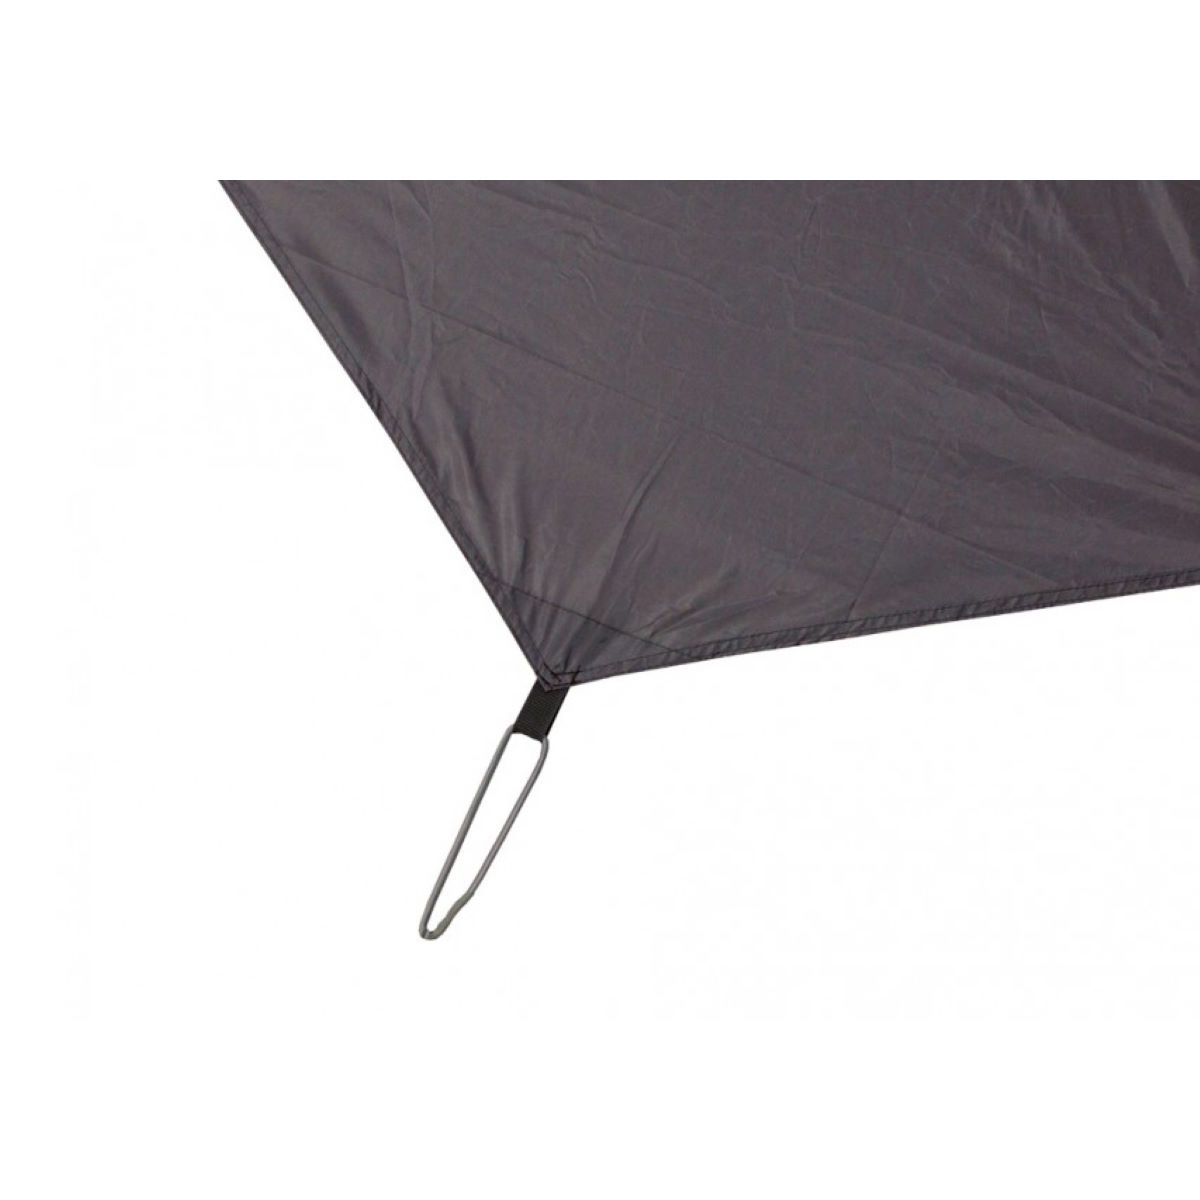 Vango Vango Groundsheet Protector - GP530 - Scafell 200   Inners and Floors